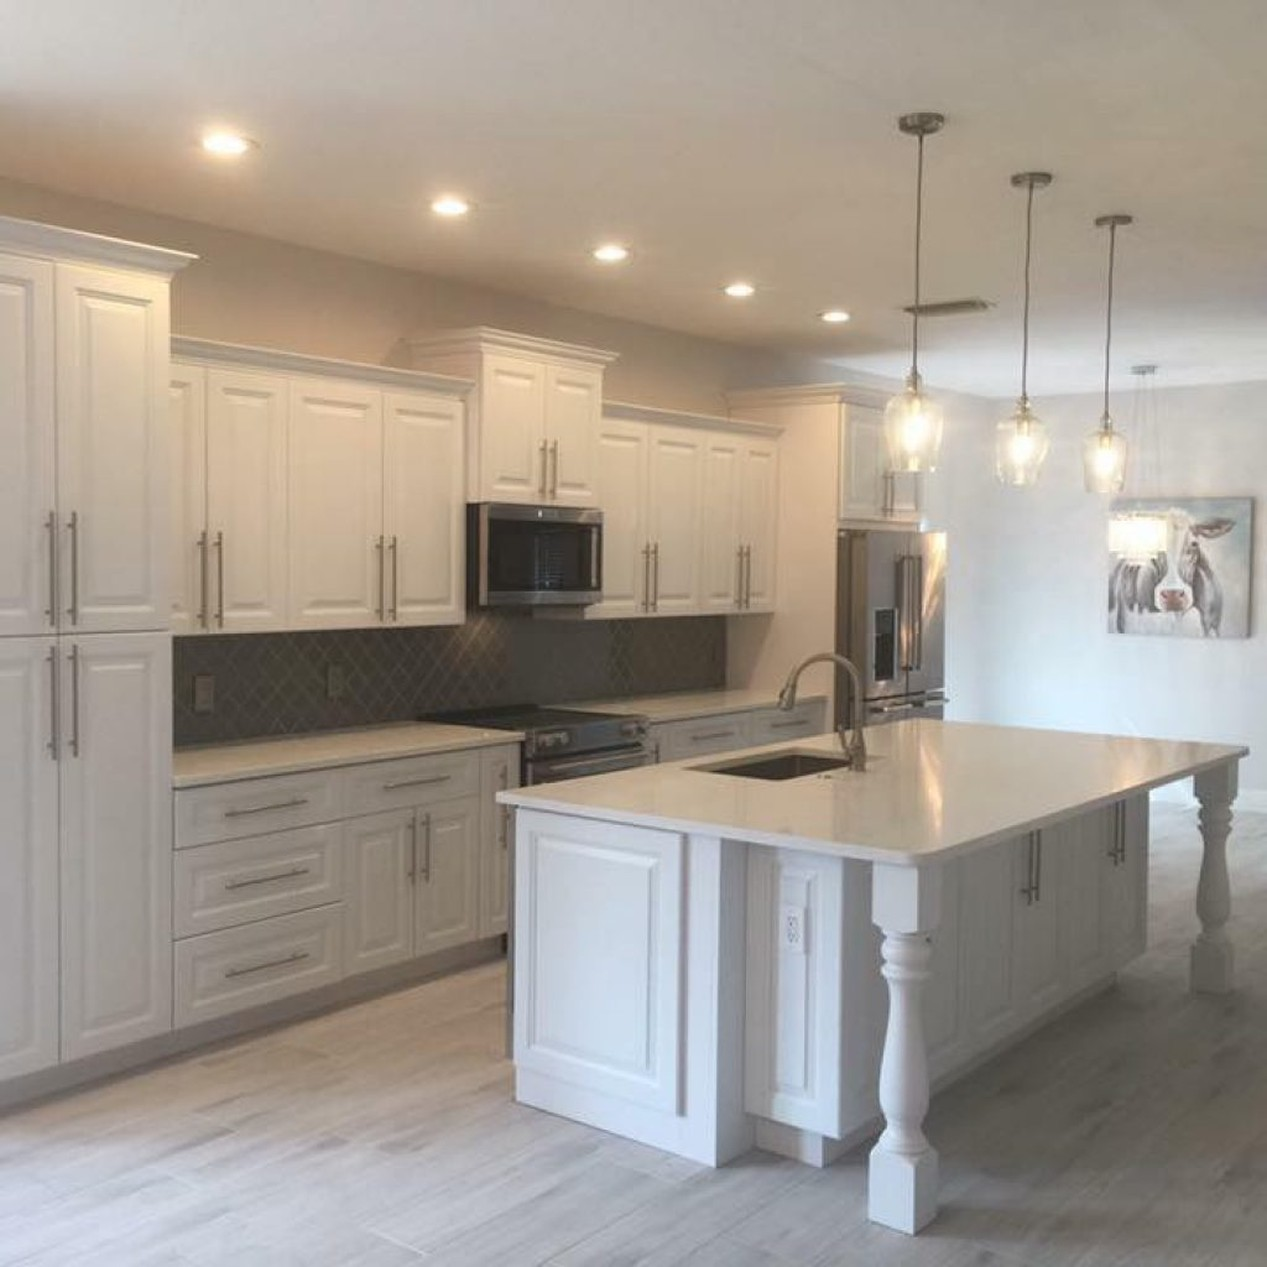 Kitchen and Bathroom Remodelers| J & J Services